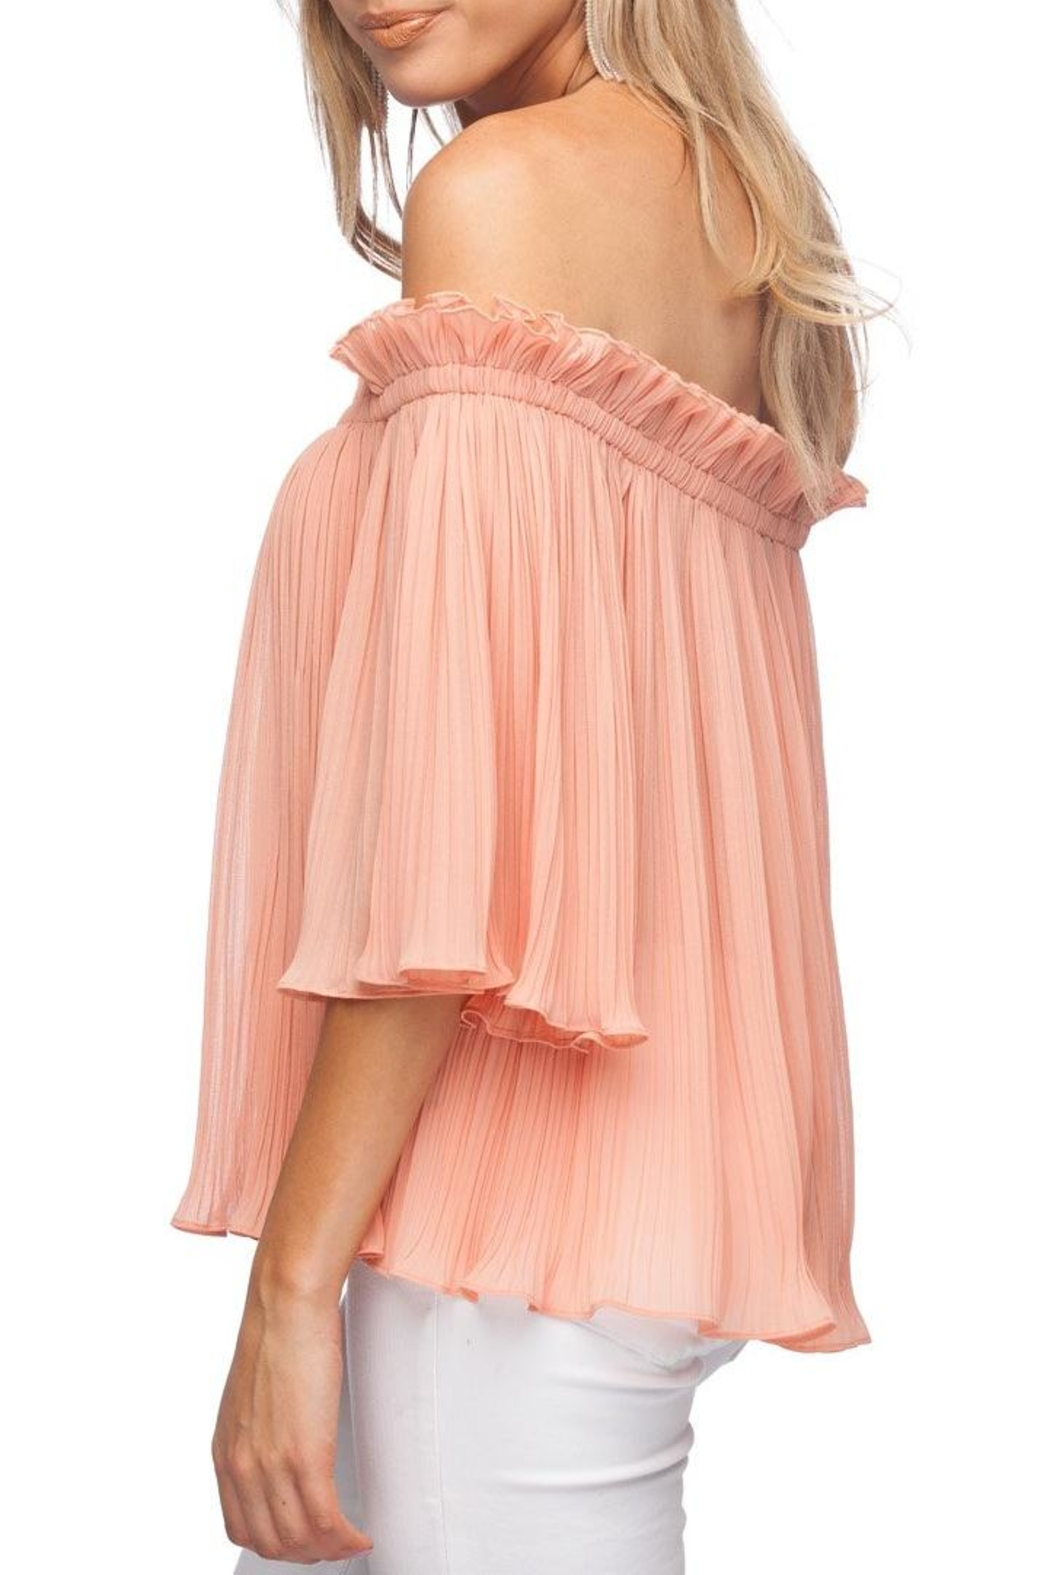 Buddy Love Annaberg Top Peach - Front Full Image